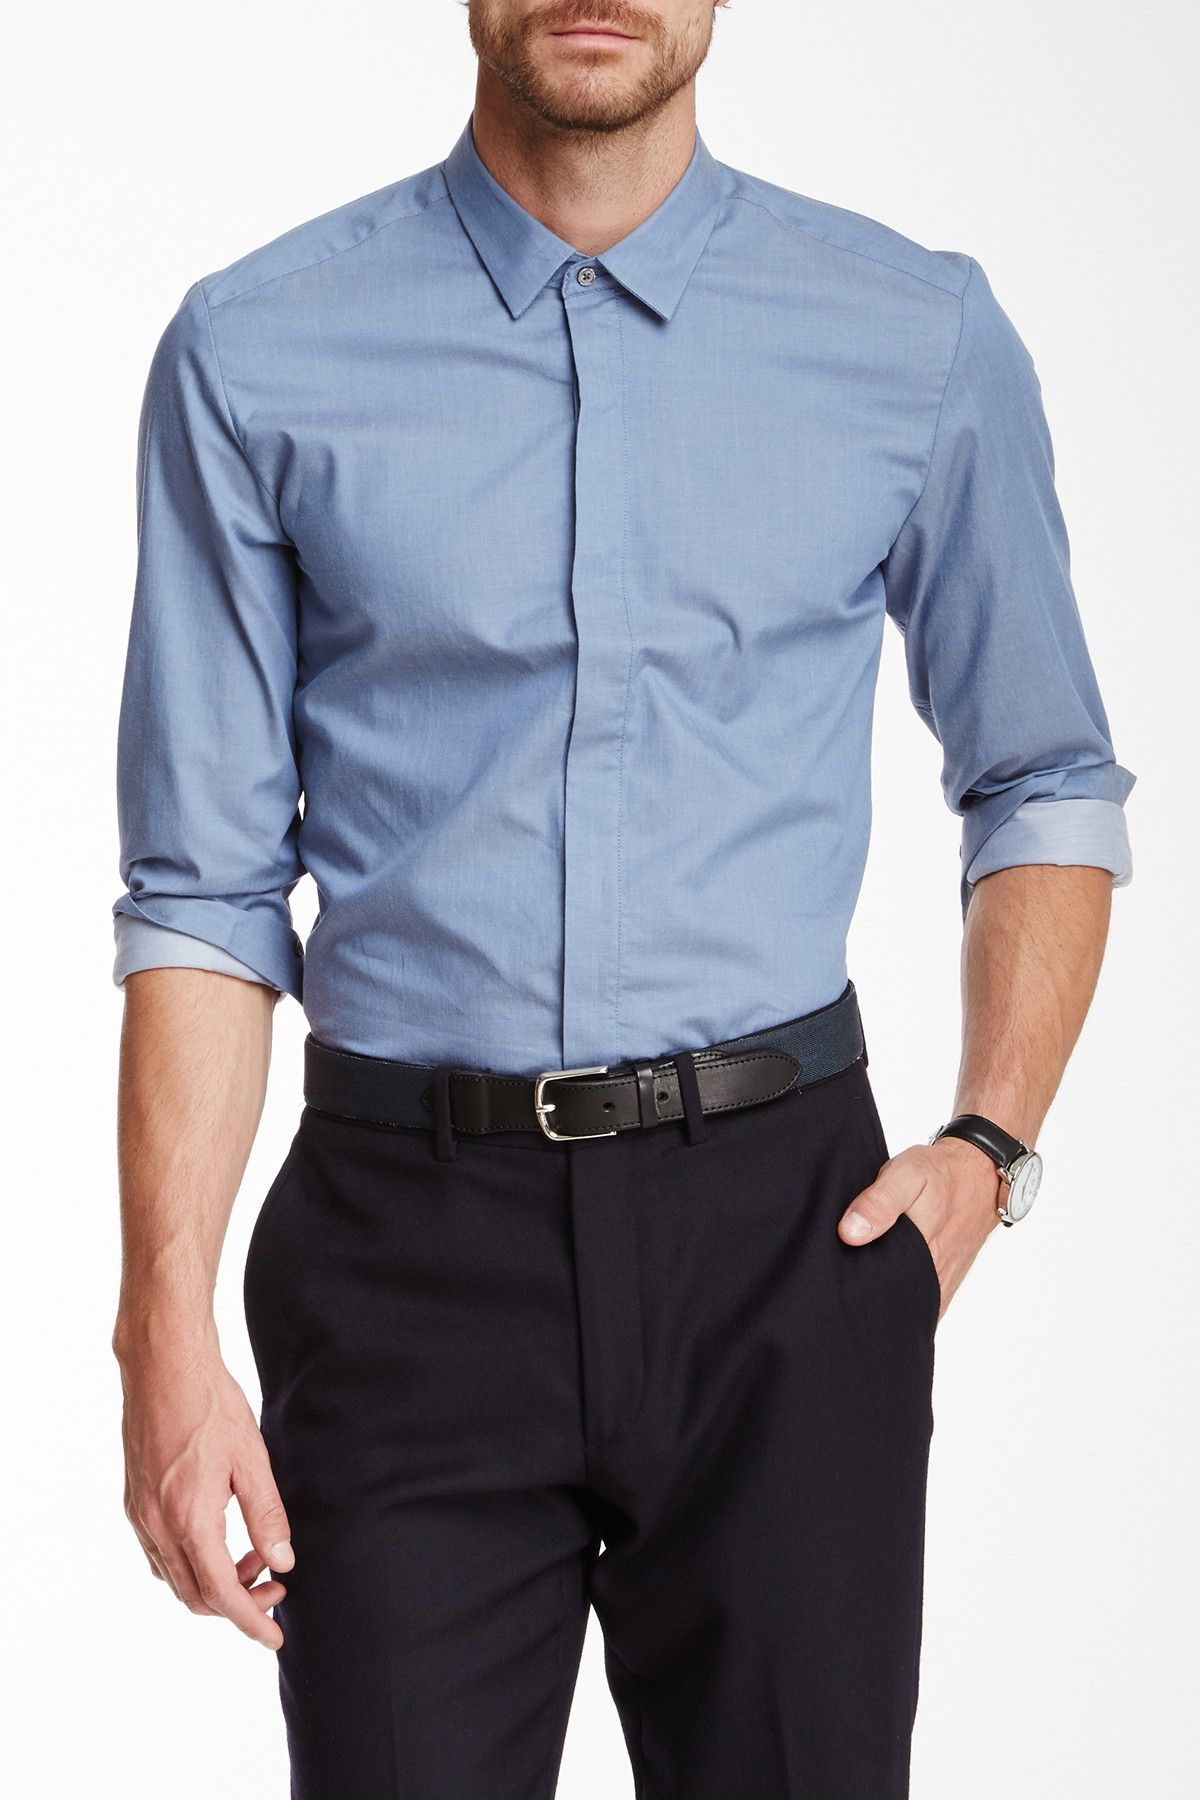 men\'s style | L o o k | Pinterest | Guy clothes, Male fashion and ...